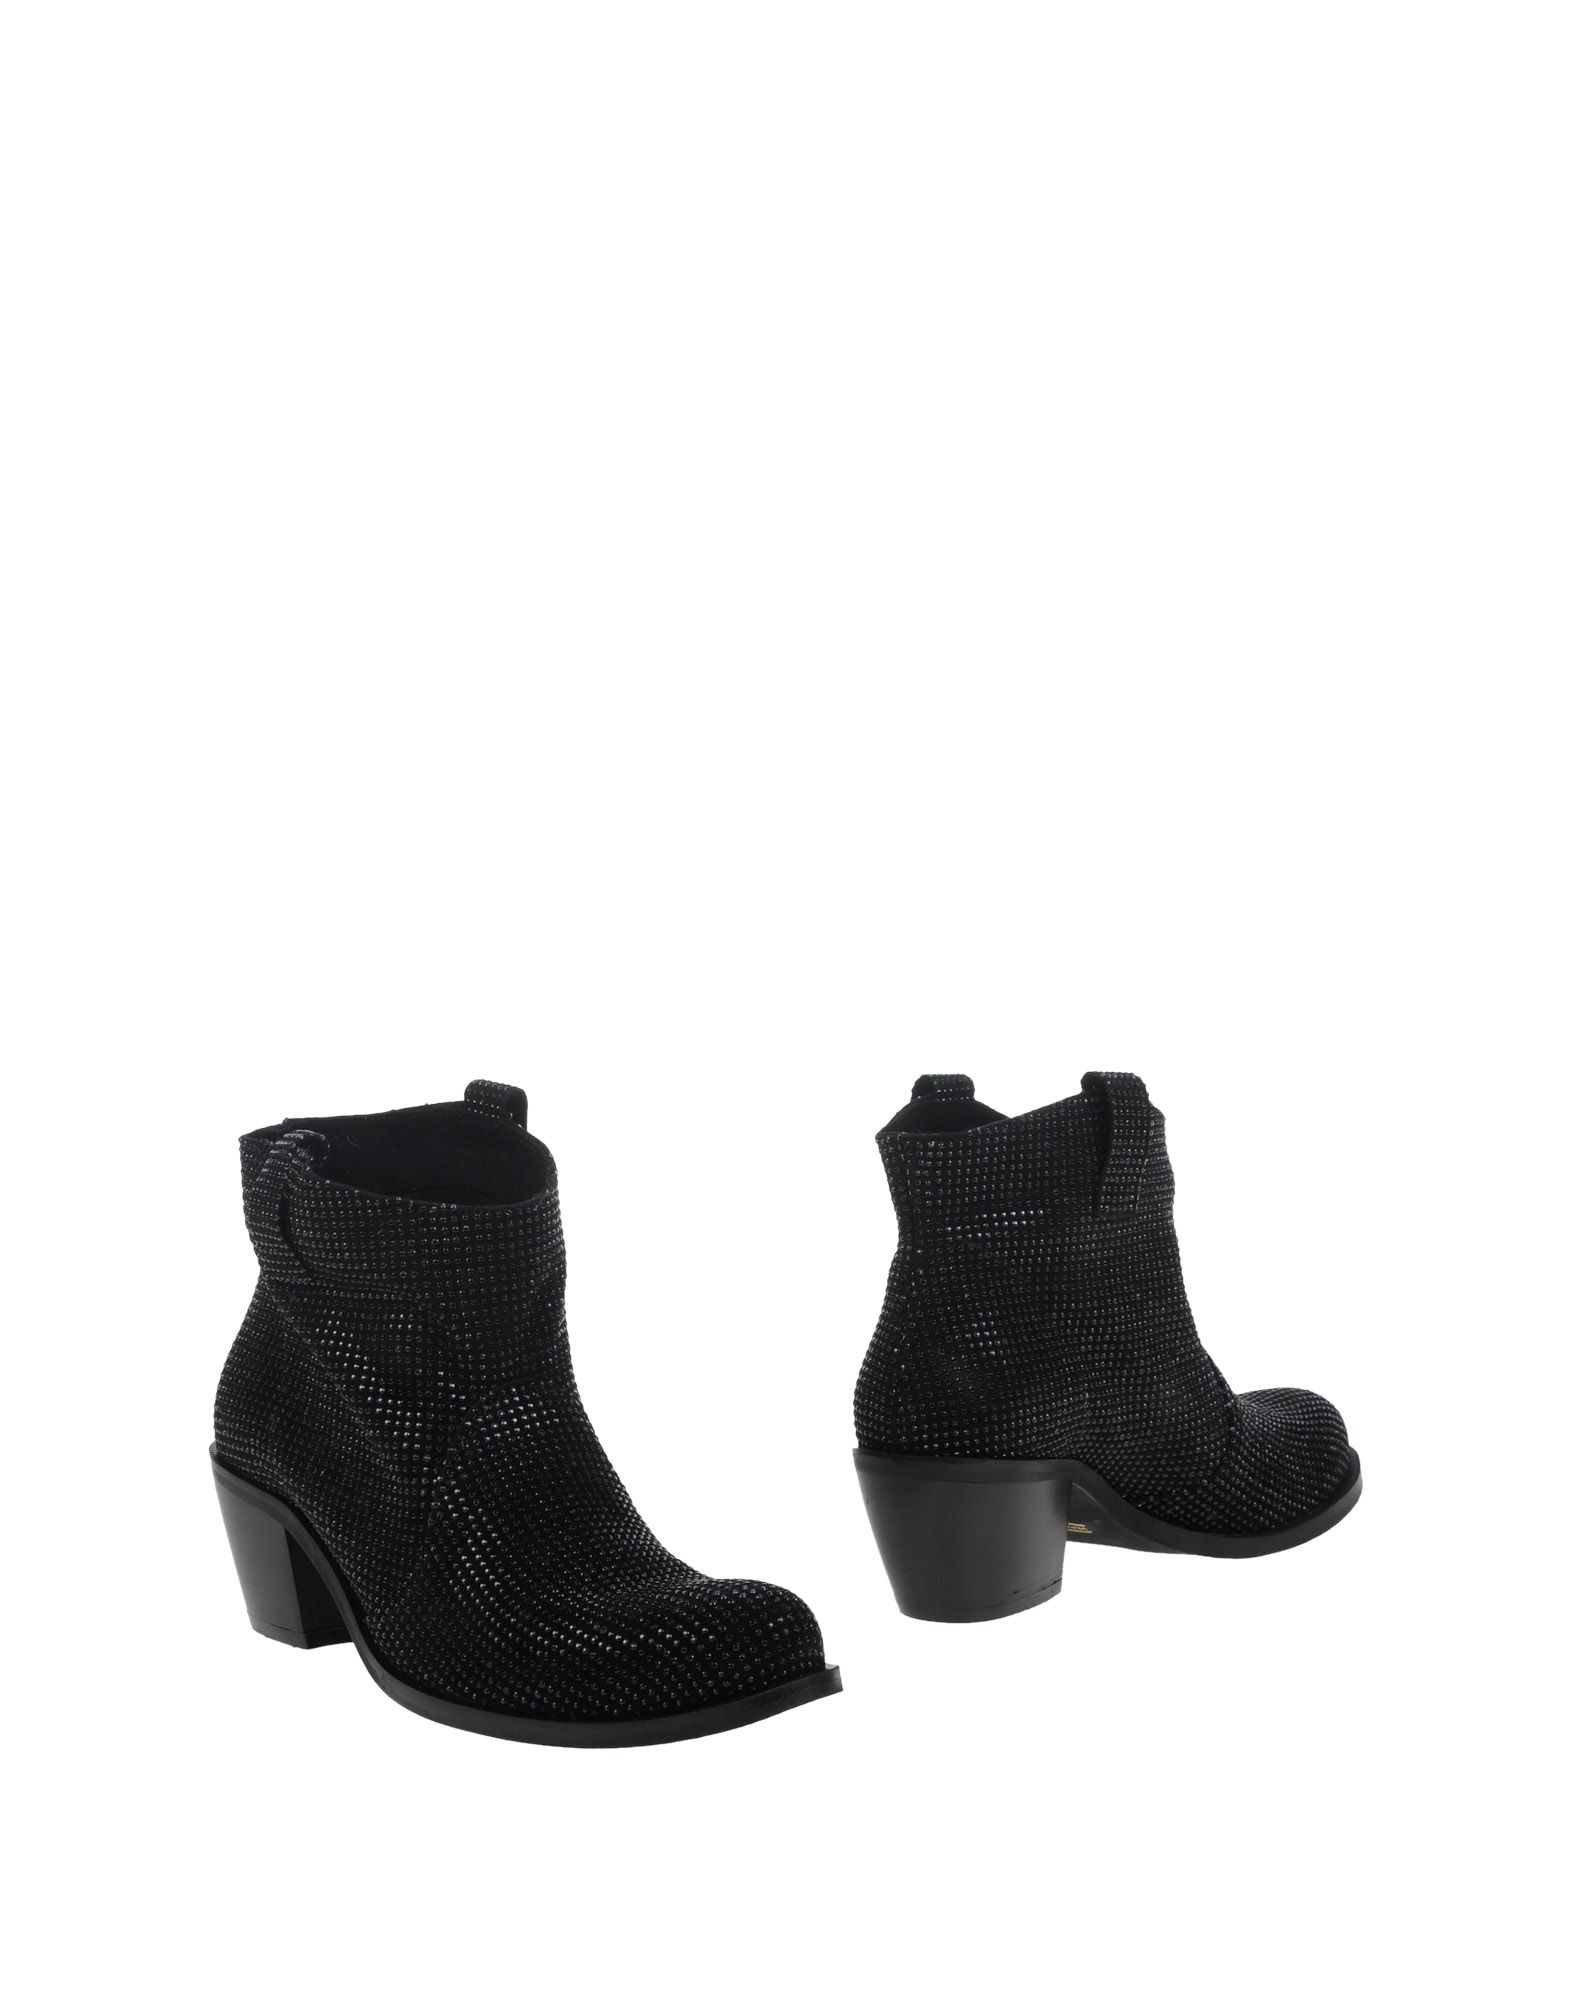 Bottine Fabrizio Chini Femme - Bottines Fabrizio Chini sur